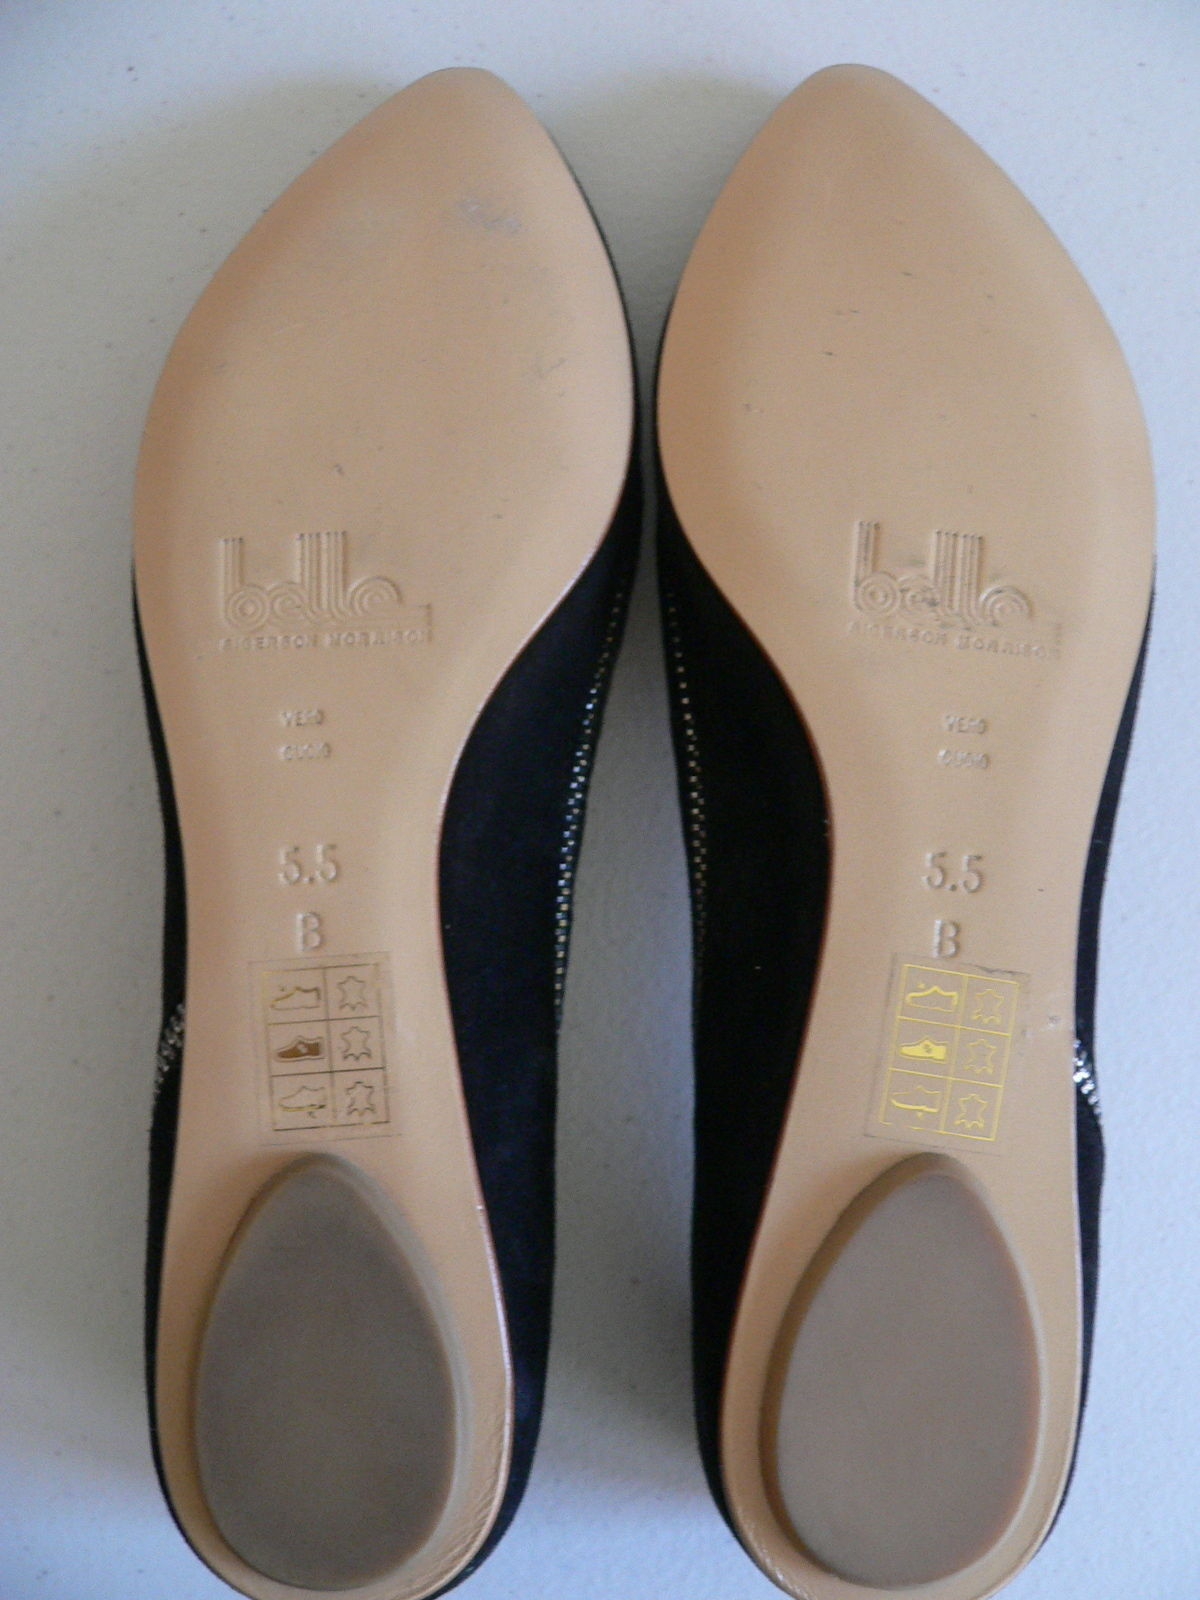 Sigerson Morisson Schuhes Flats Suede Suede Suede Leder Skimmers Pointy Toe Zippers Größe 5.5 61b975